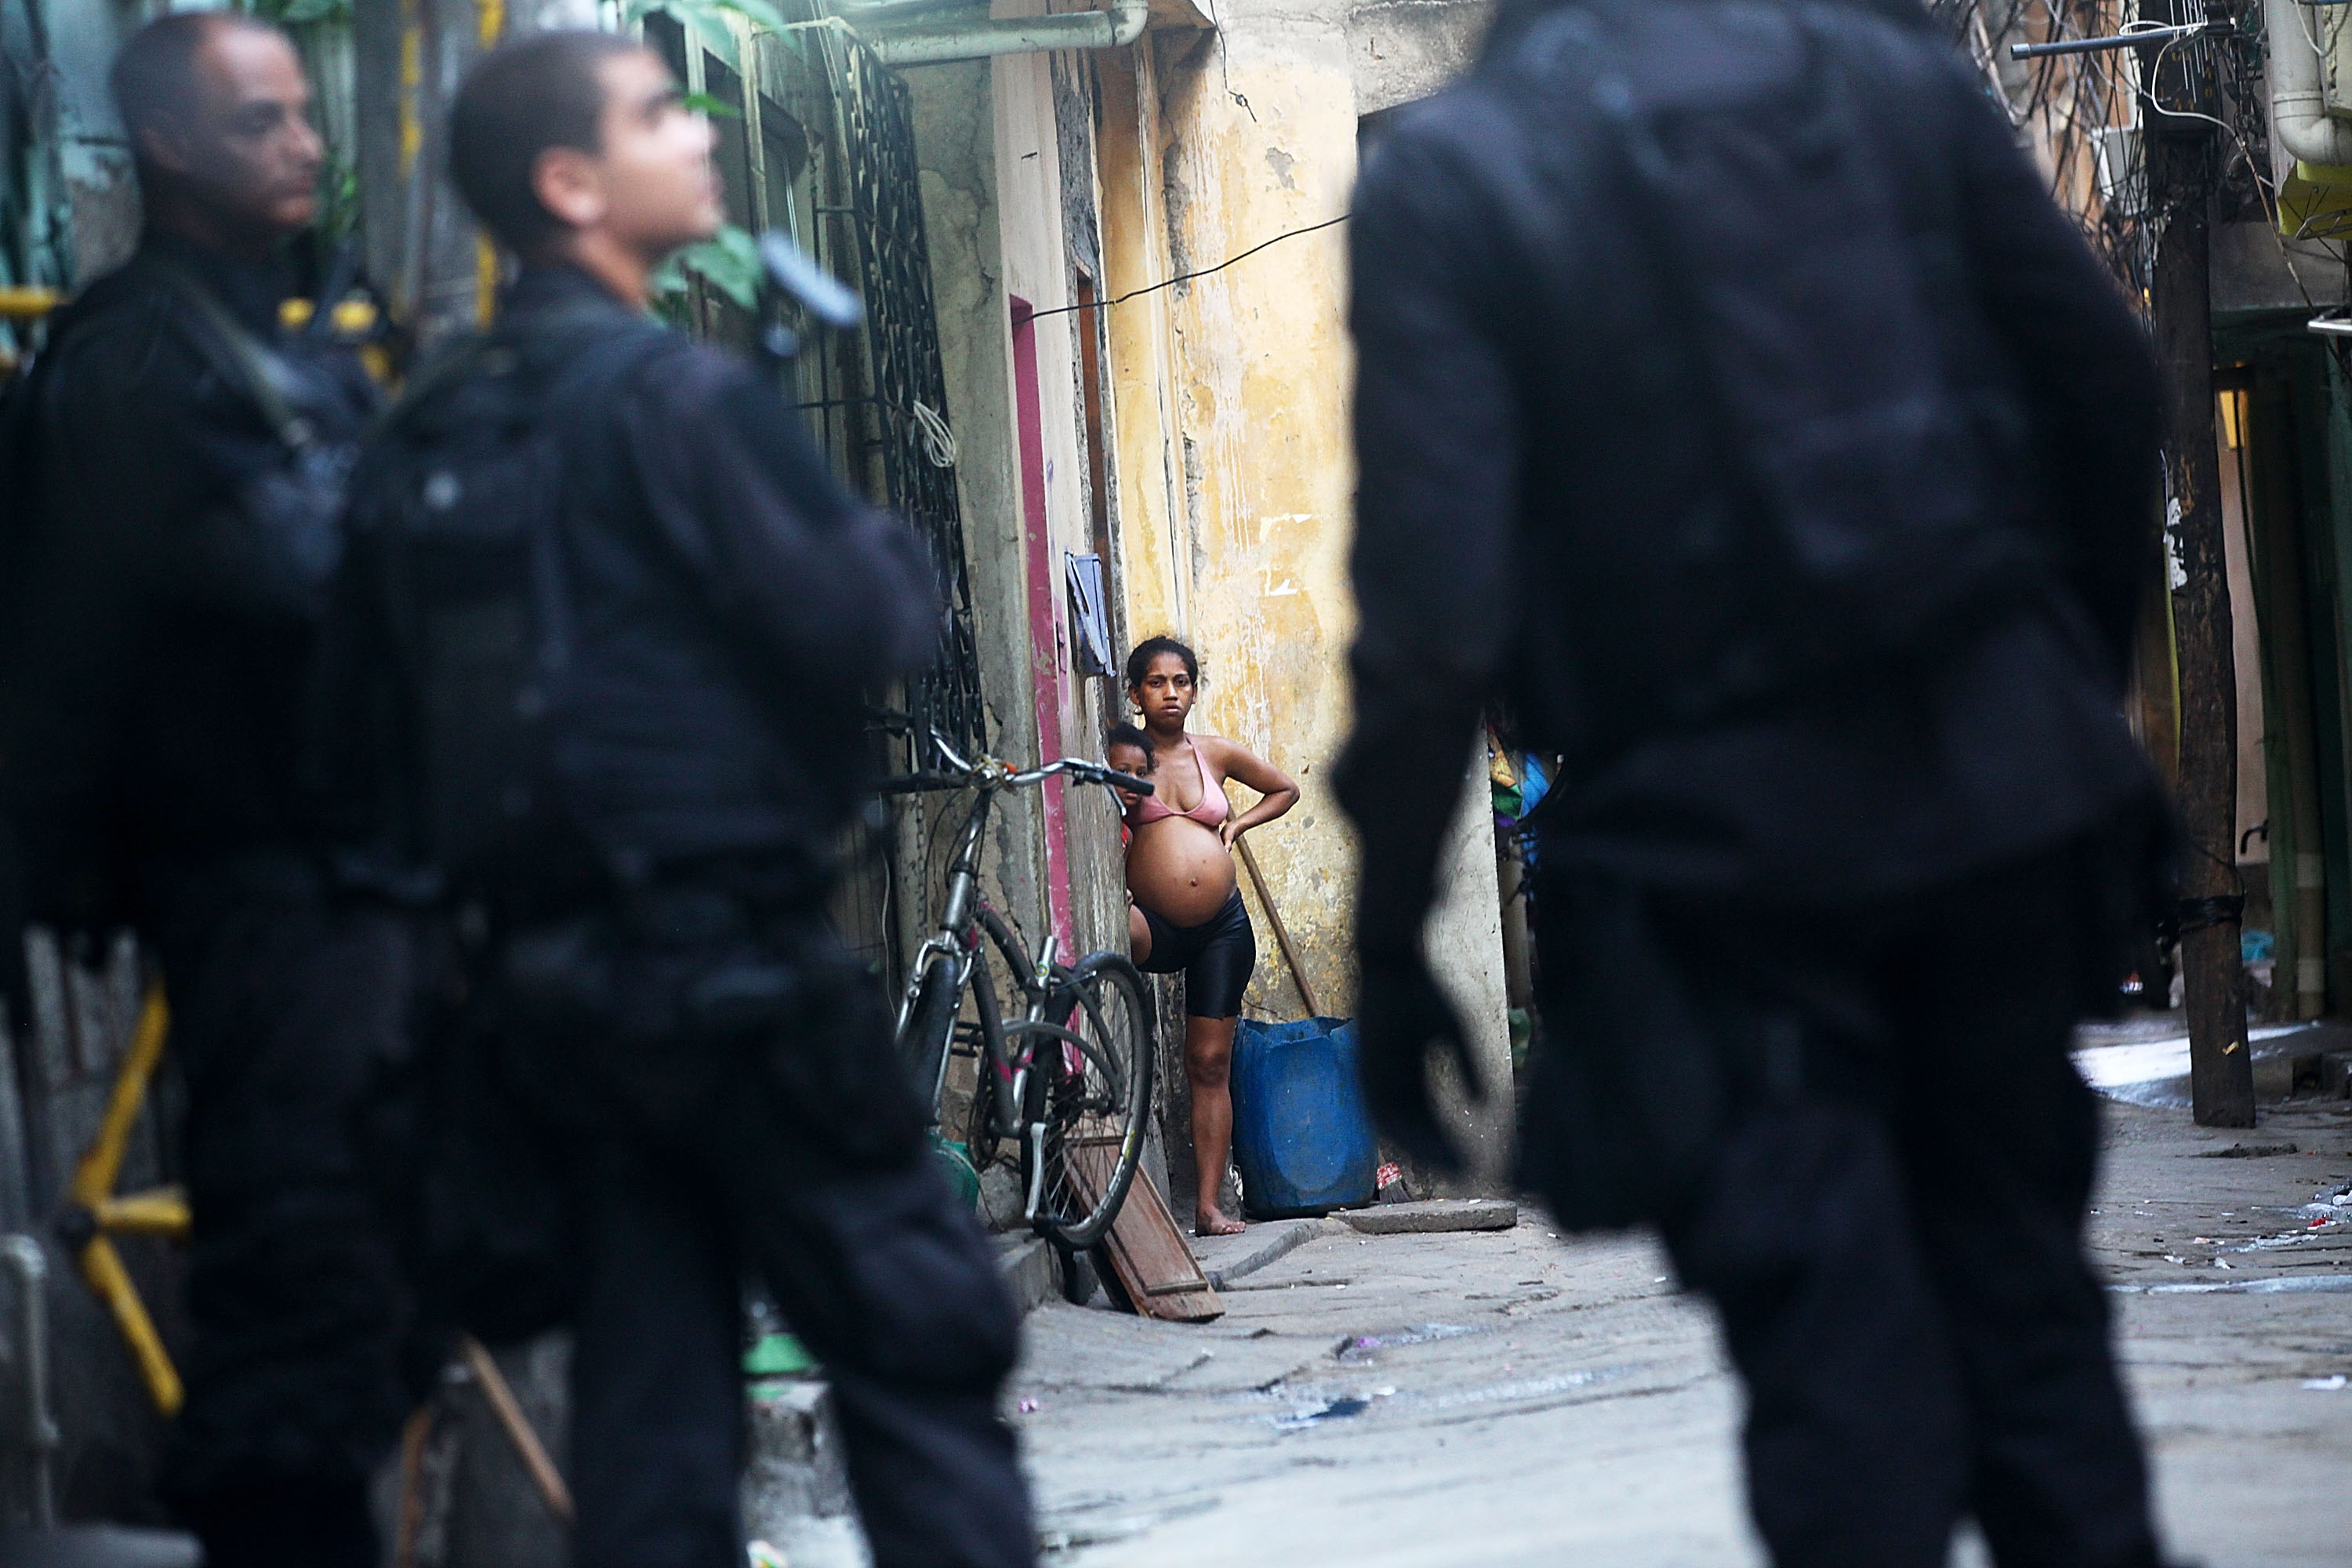 Residents look on as Brazilian military police officers patrol in the unpacified Complexo da Mare, one of the largest favela complexes in Rio, on March 30, 2014 in Rio de Janeiro.